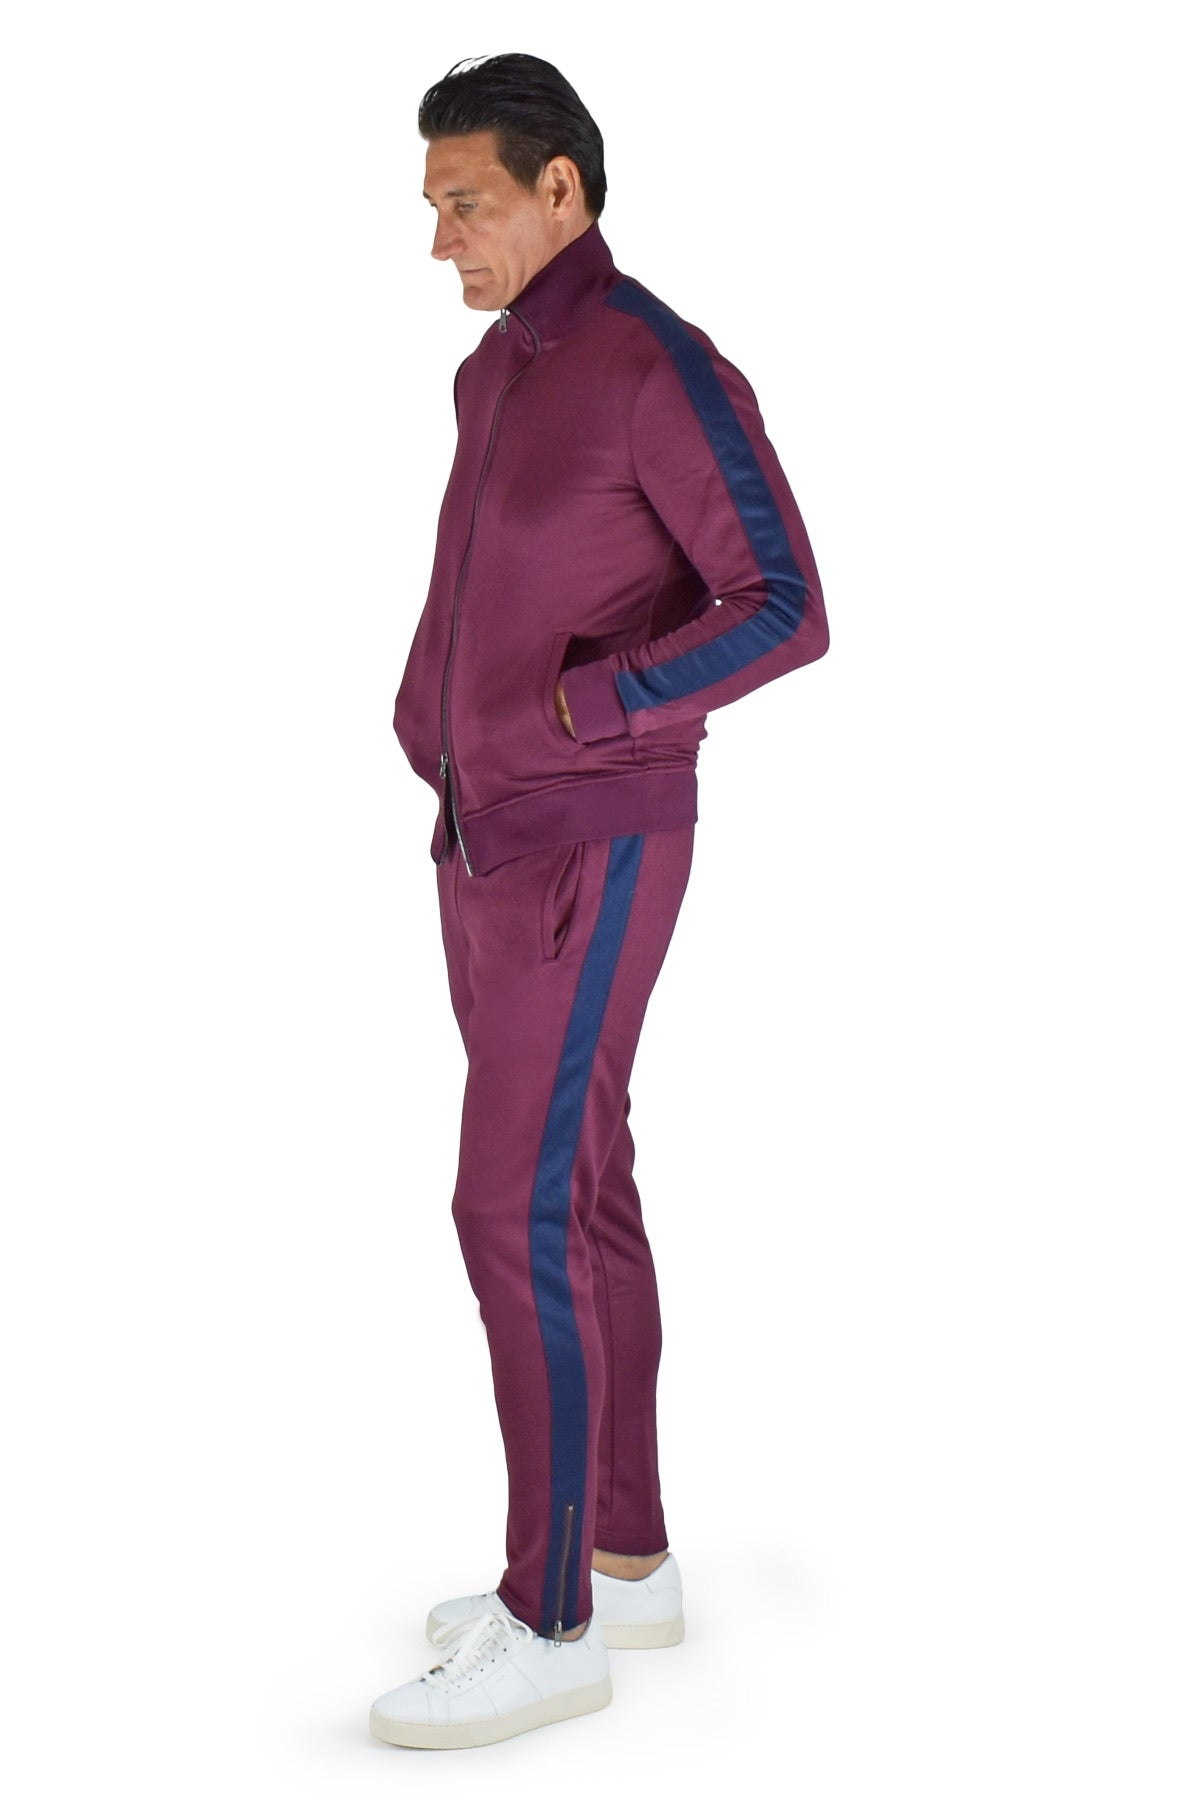 David August Tracksuit in Burgundy with Navy Trim